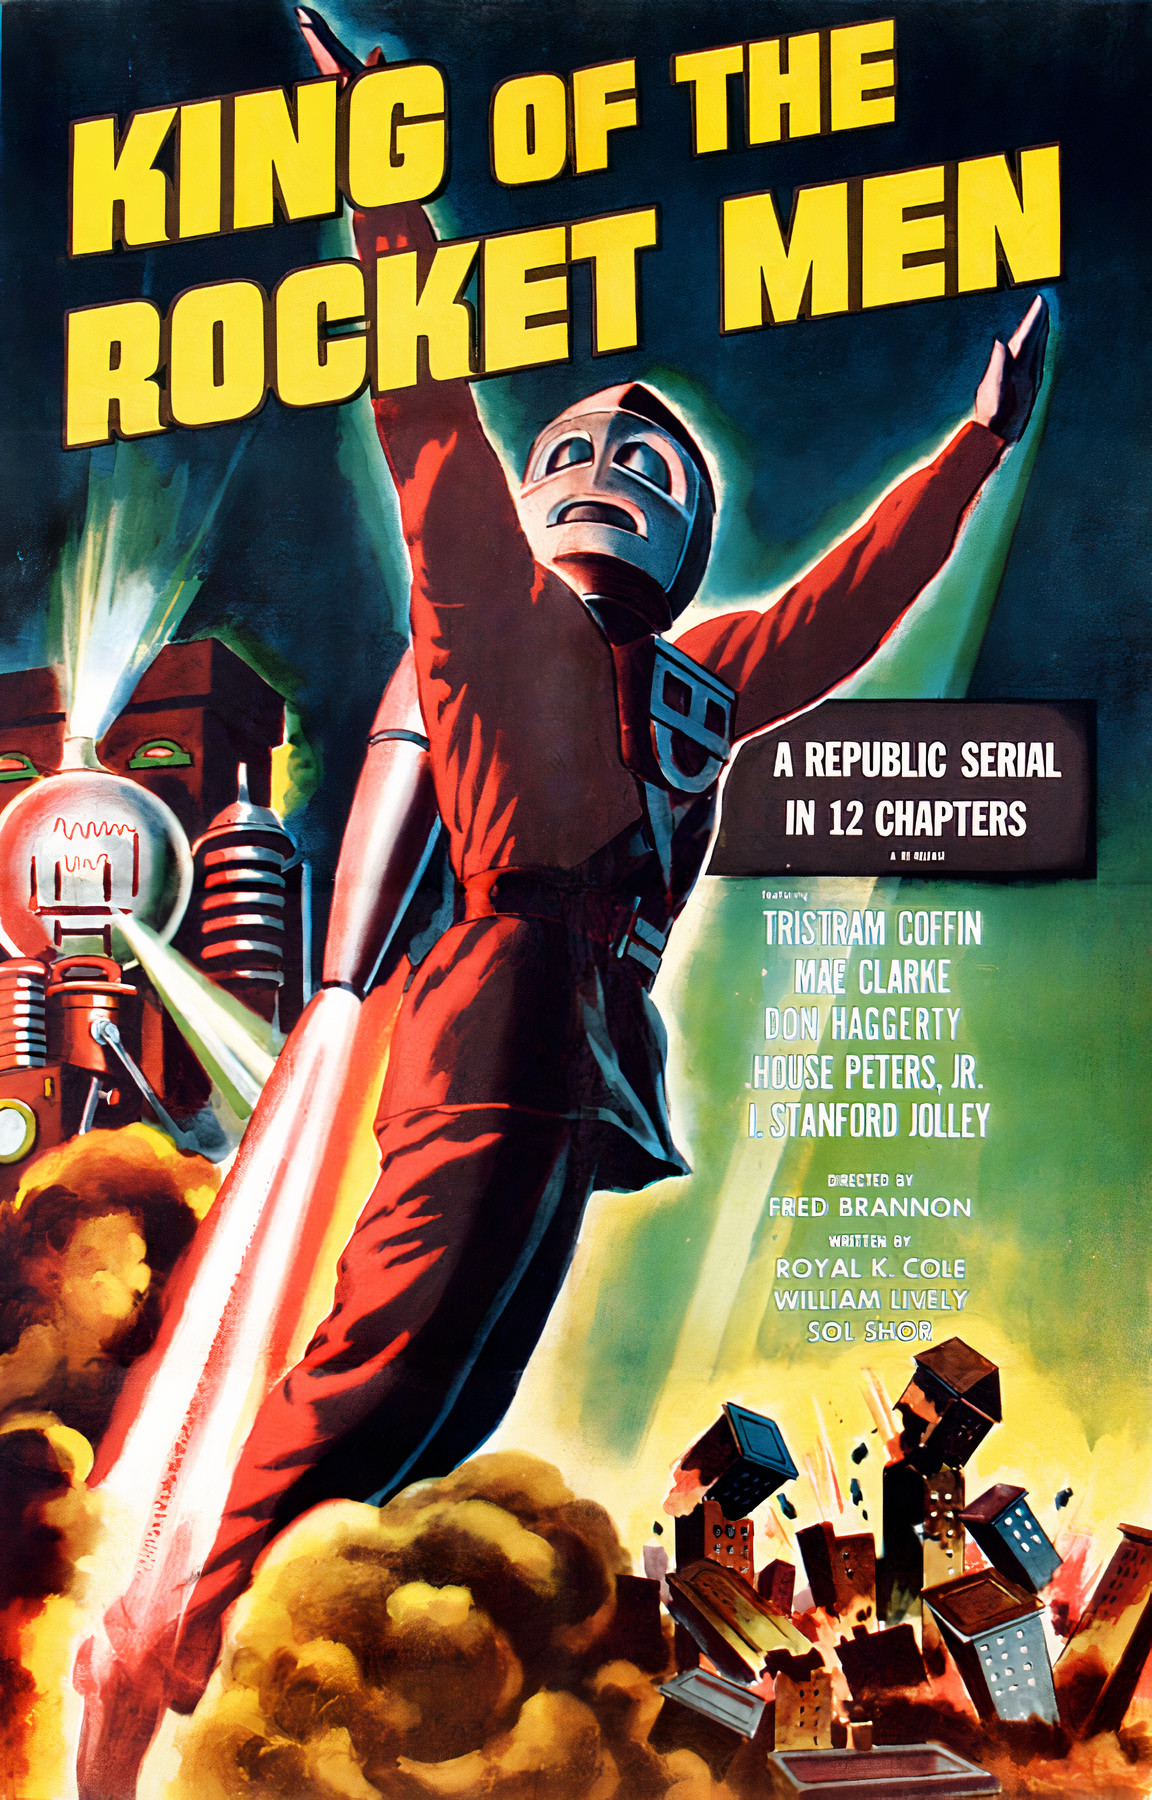 descargar king of the rocket men 1949 serie completa